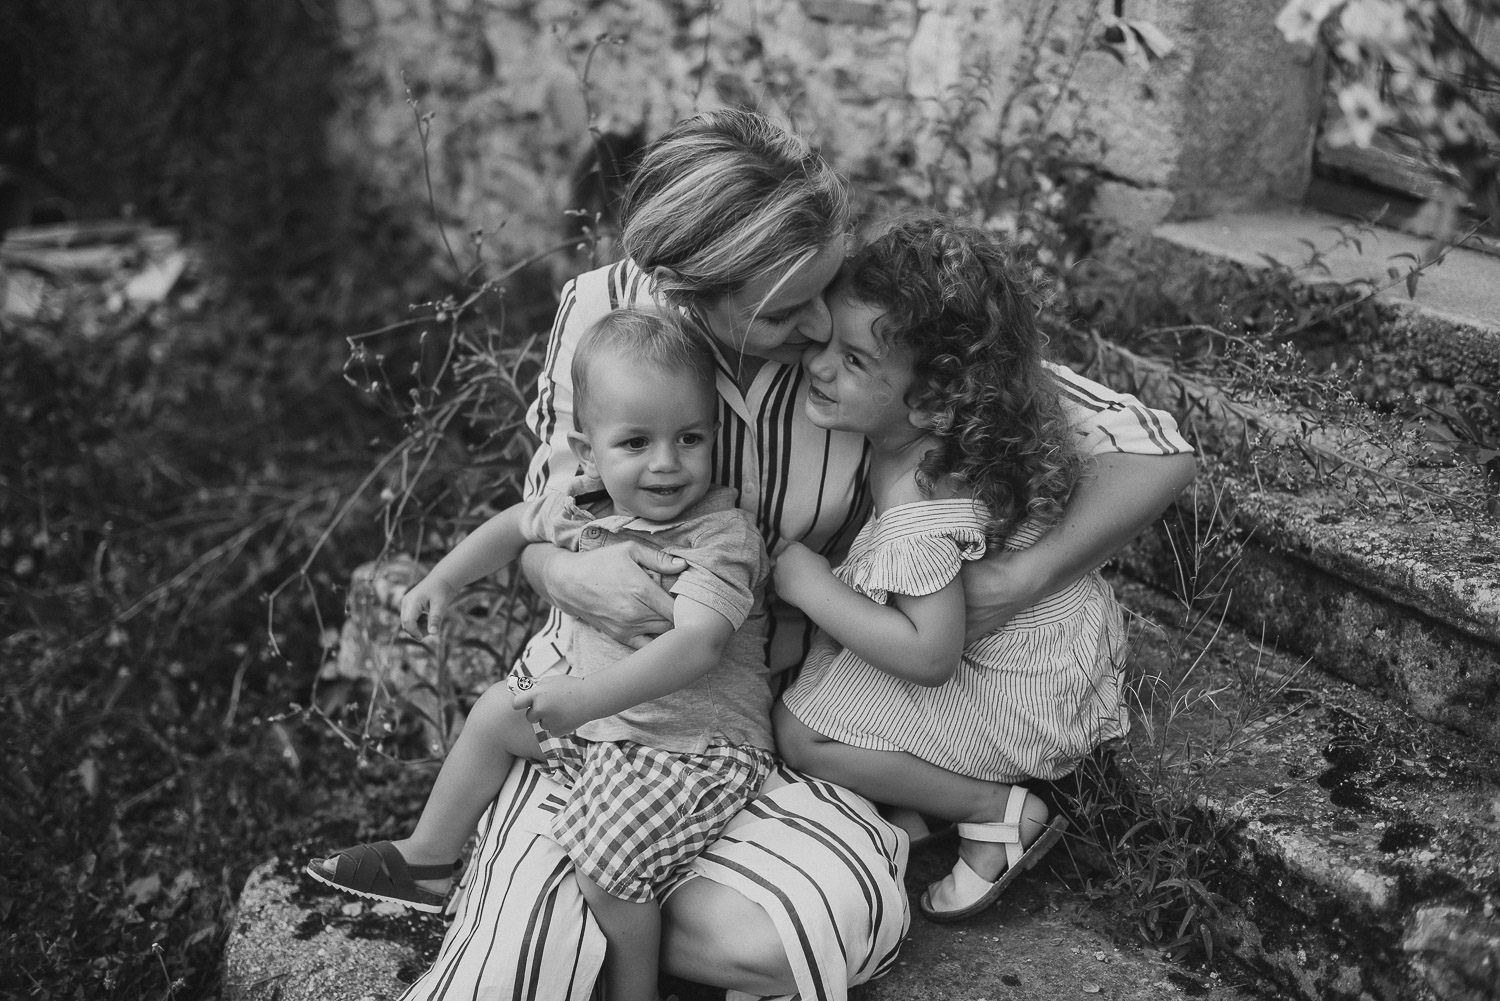 castres_south_west_france_family_lifestyle_emotive_storytelling__tarn_switzerland_katy_webb_photography_UK63